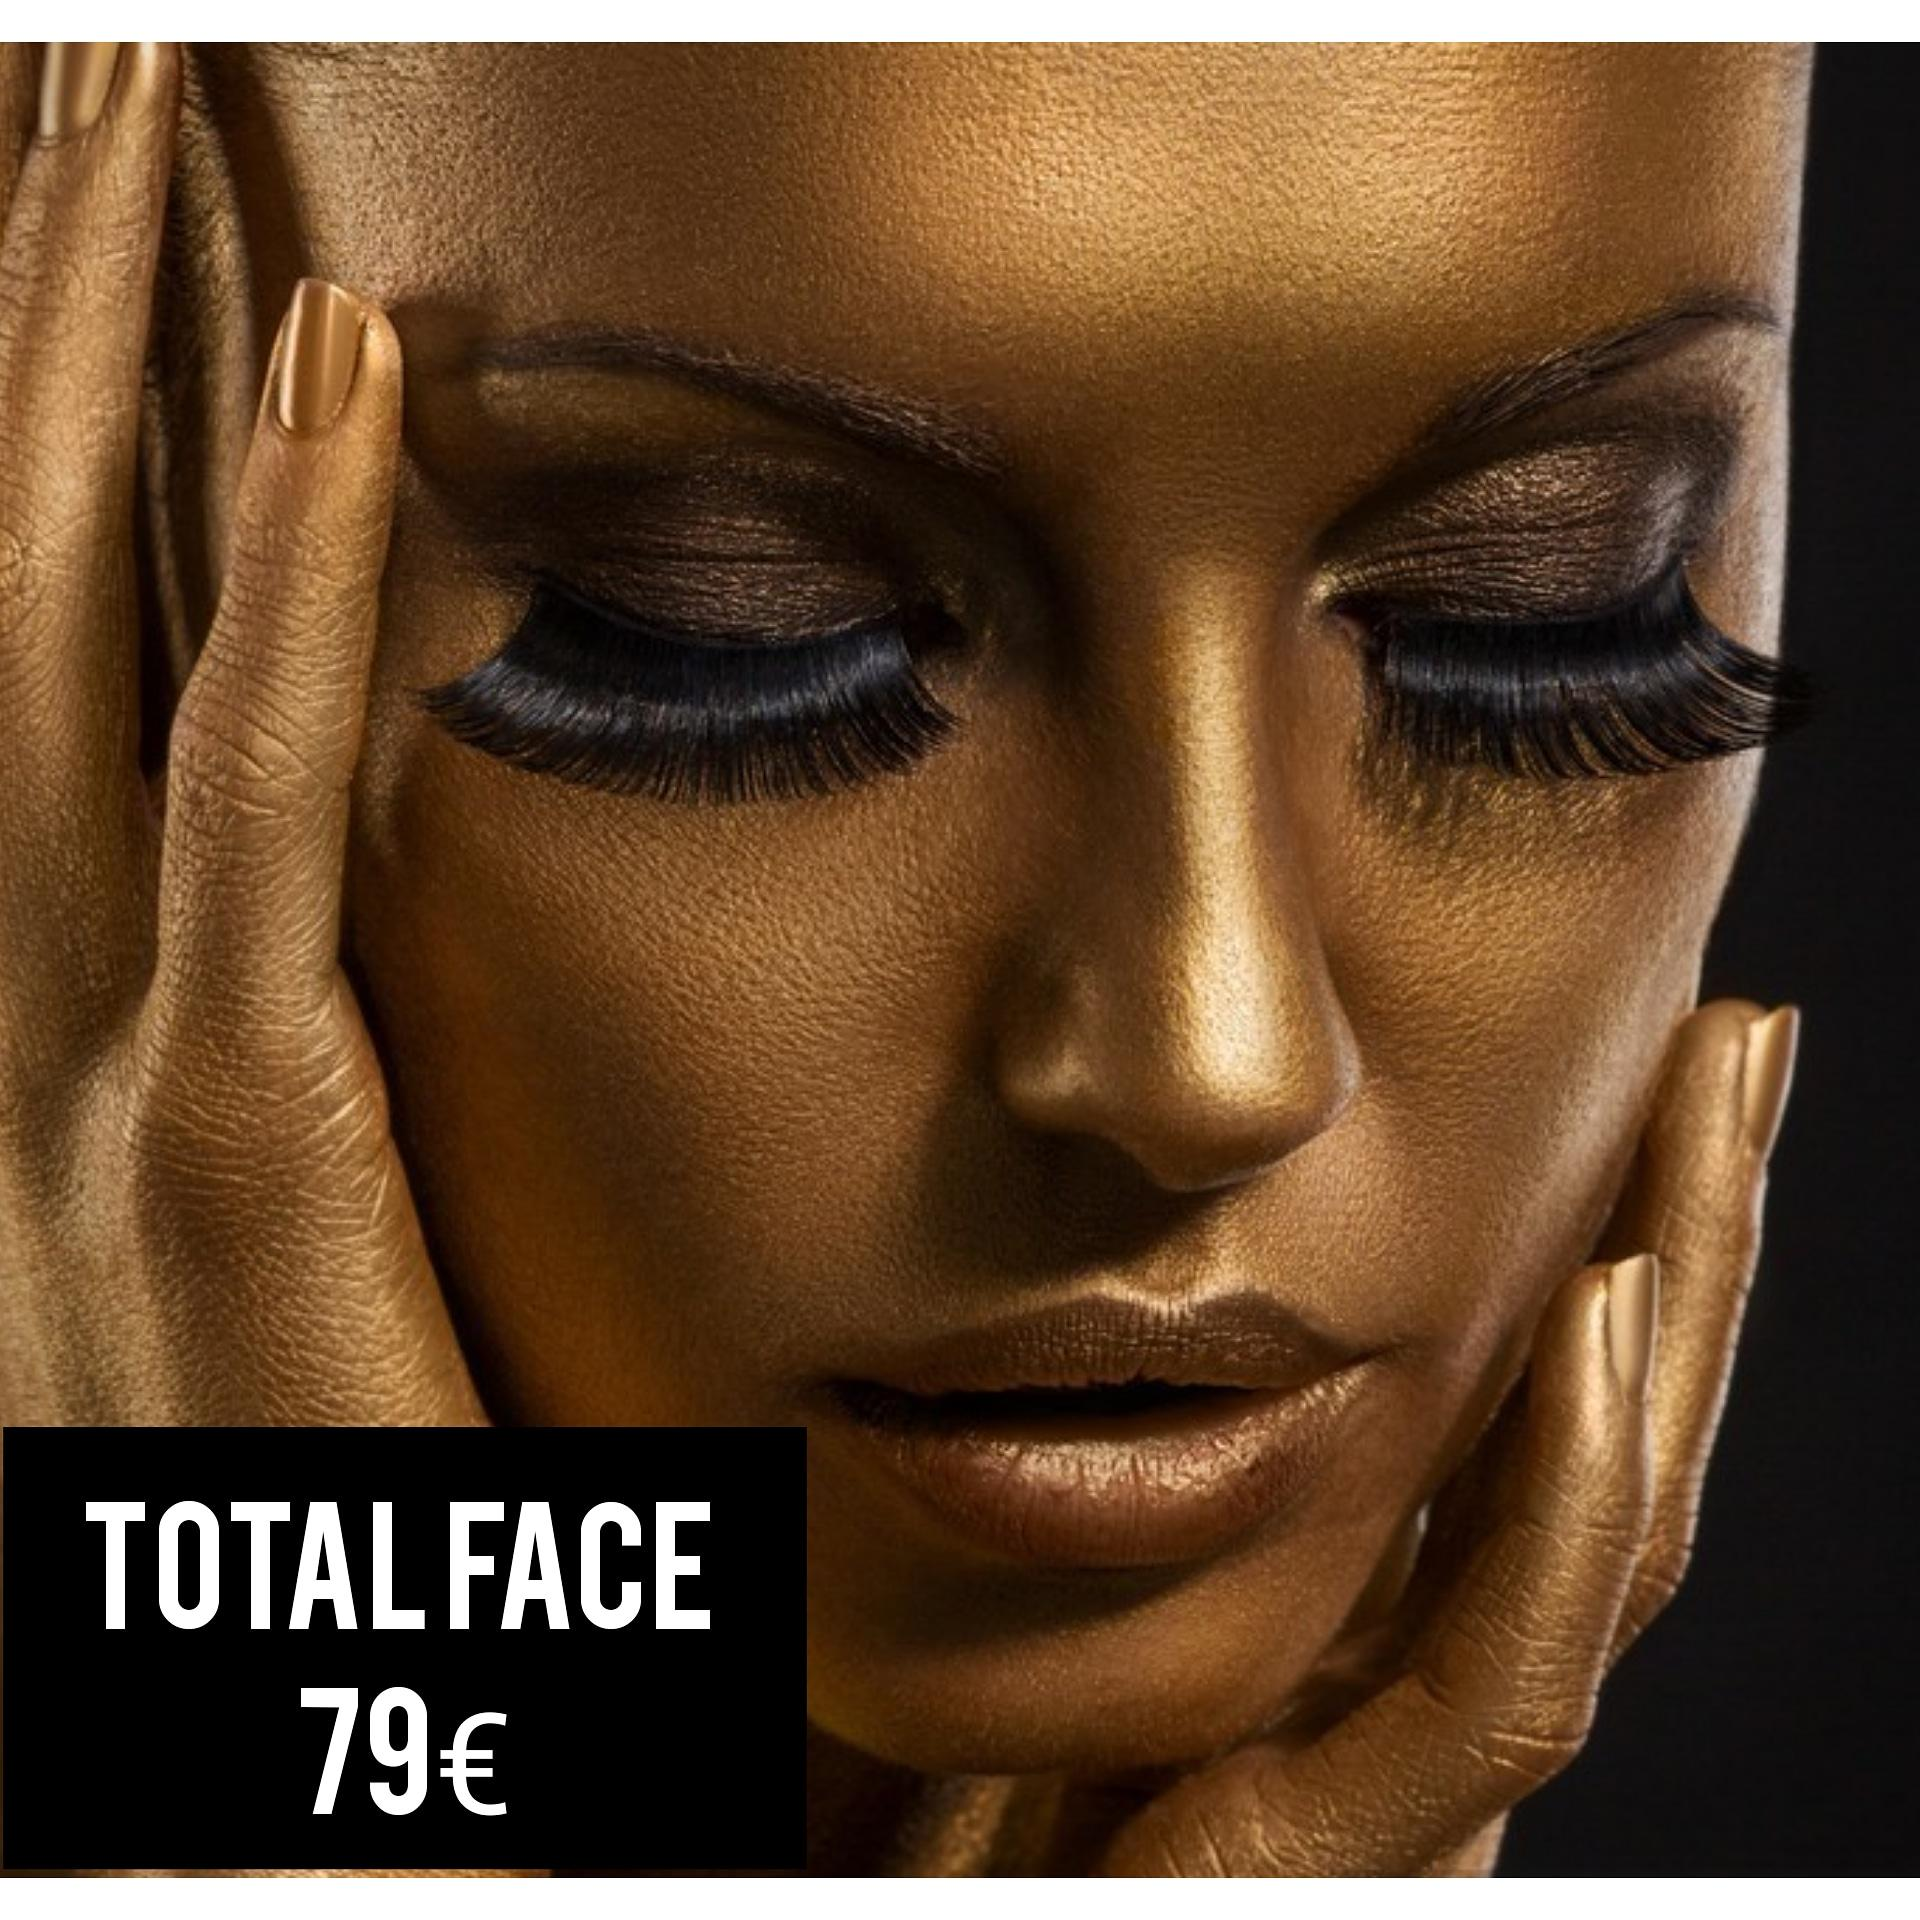 TOTAL FACE